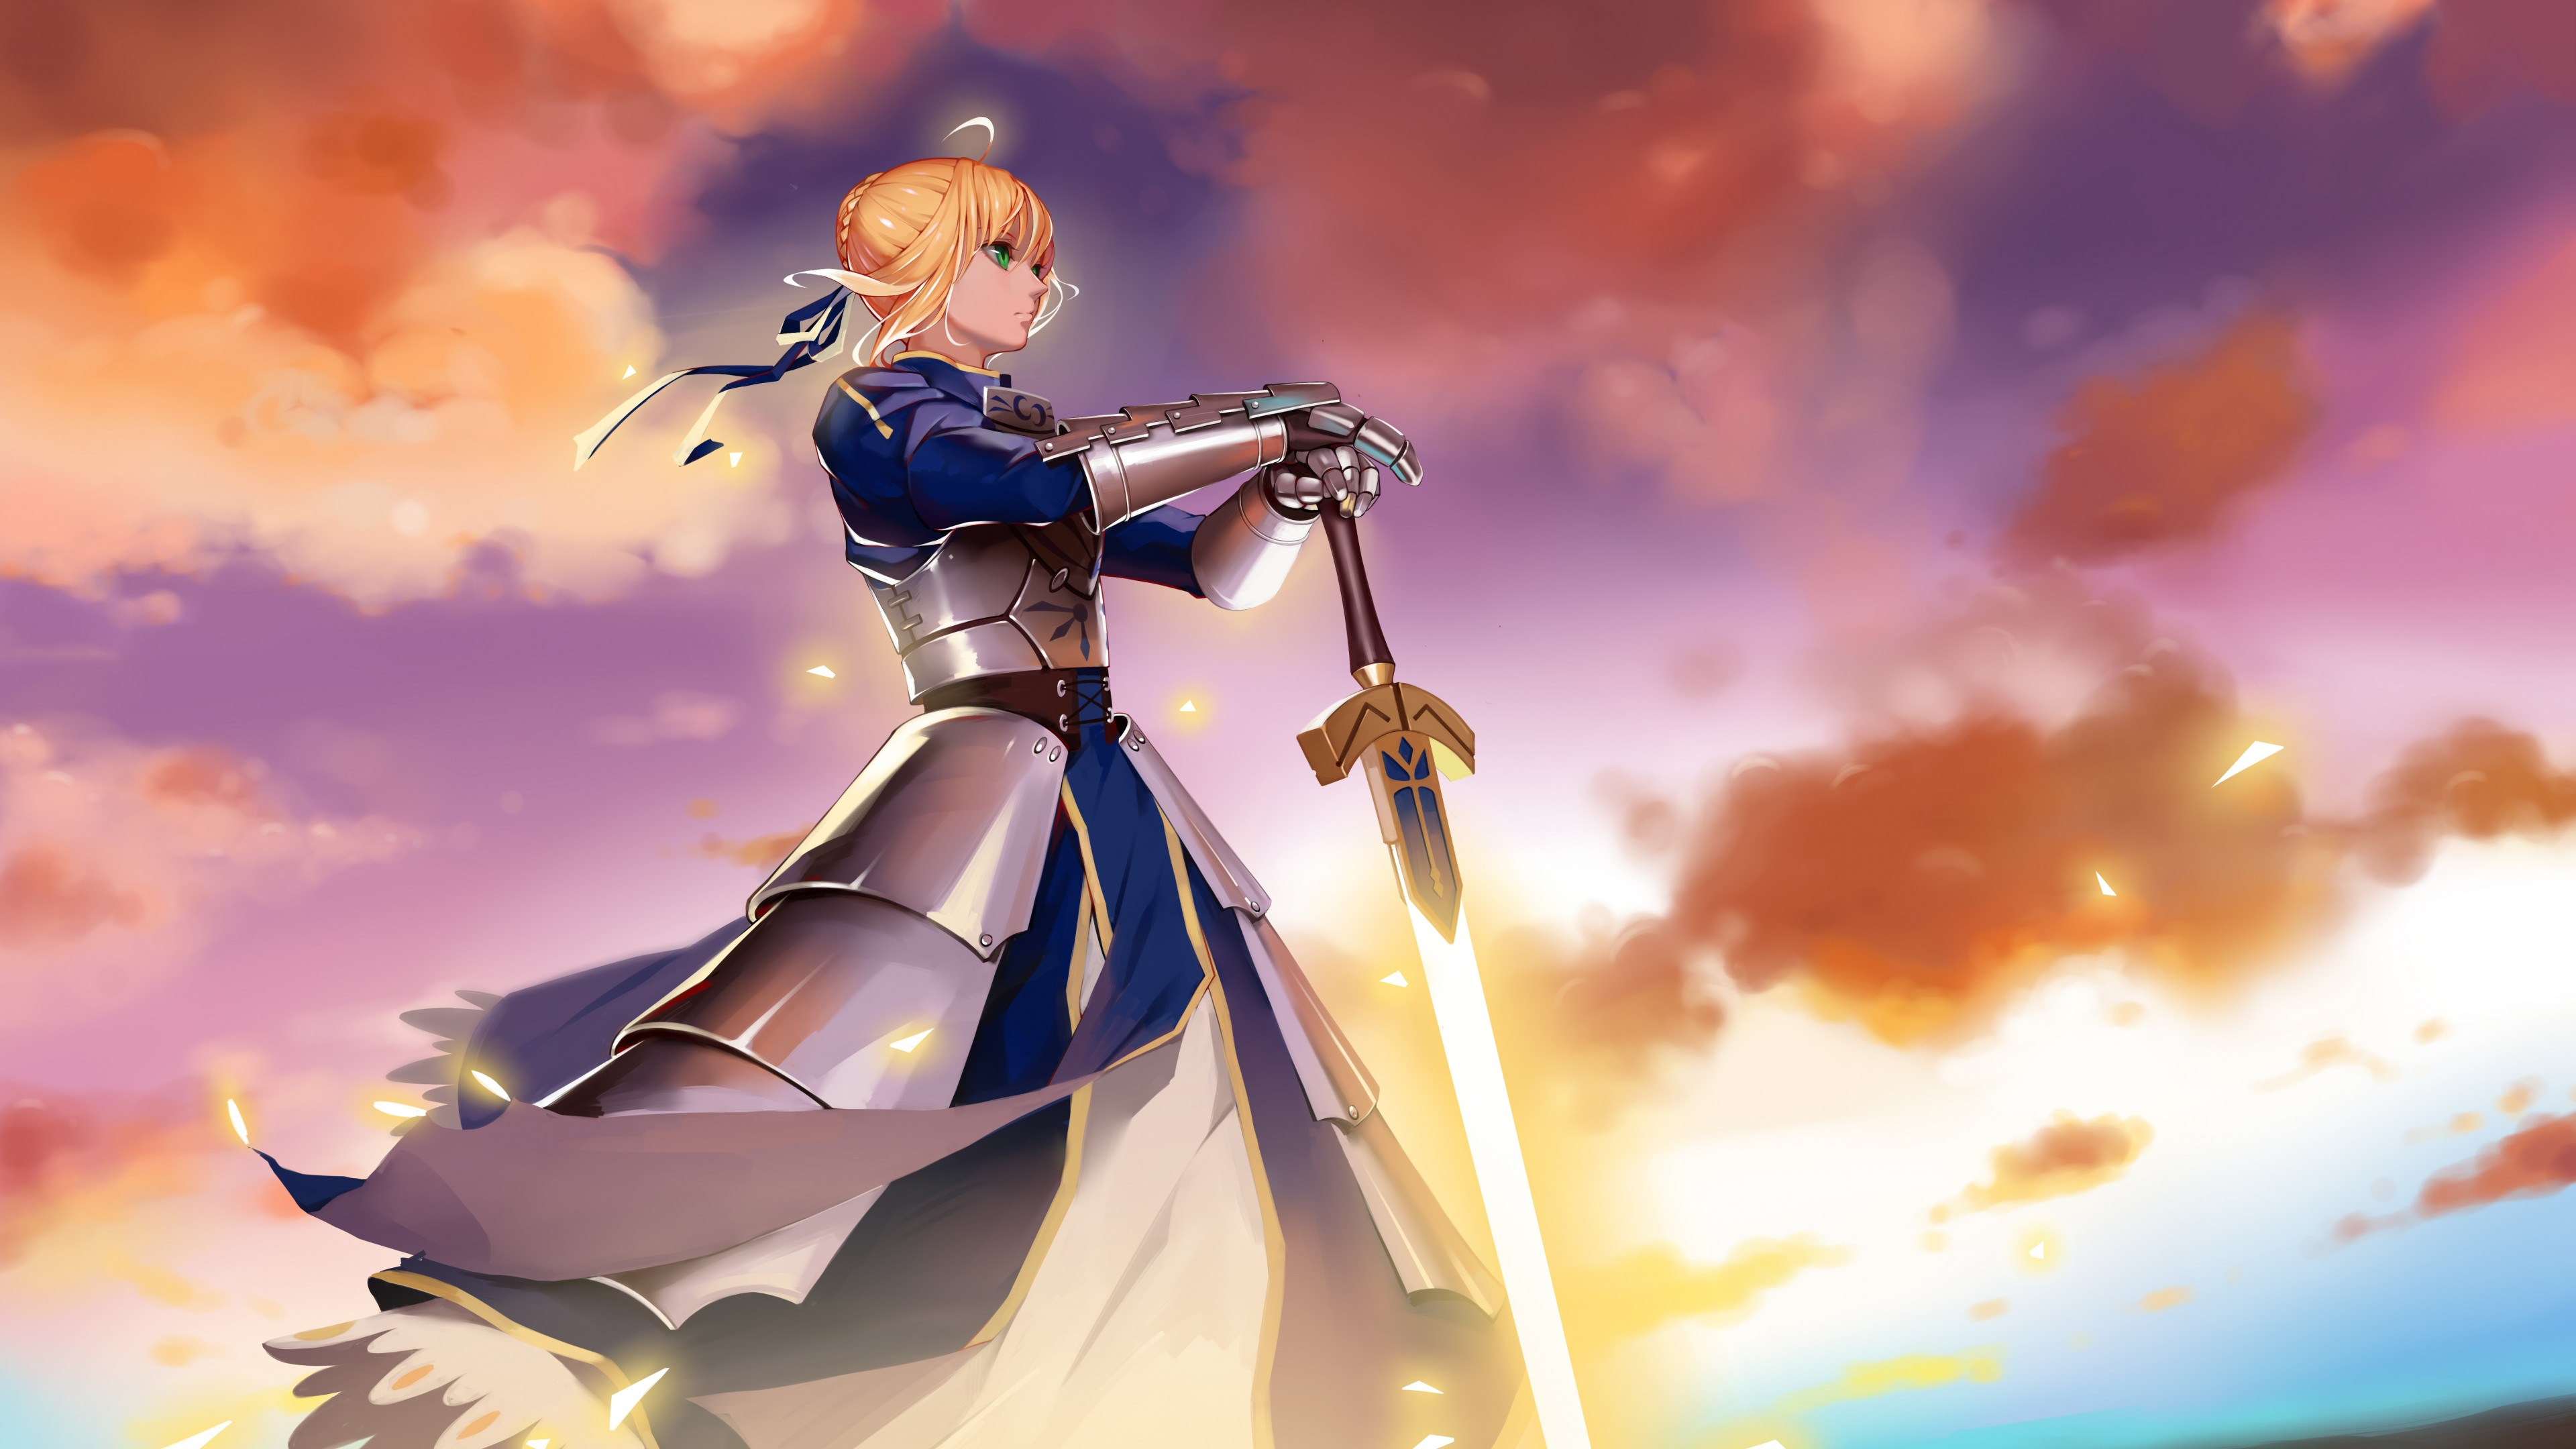 Fate Stay Night Wallpaper Fate Stay Night 481792 Hd